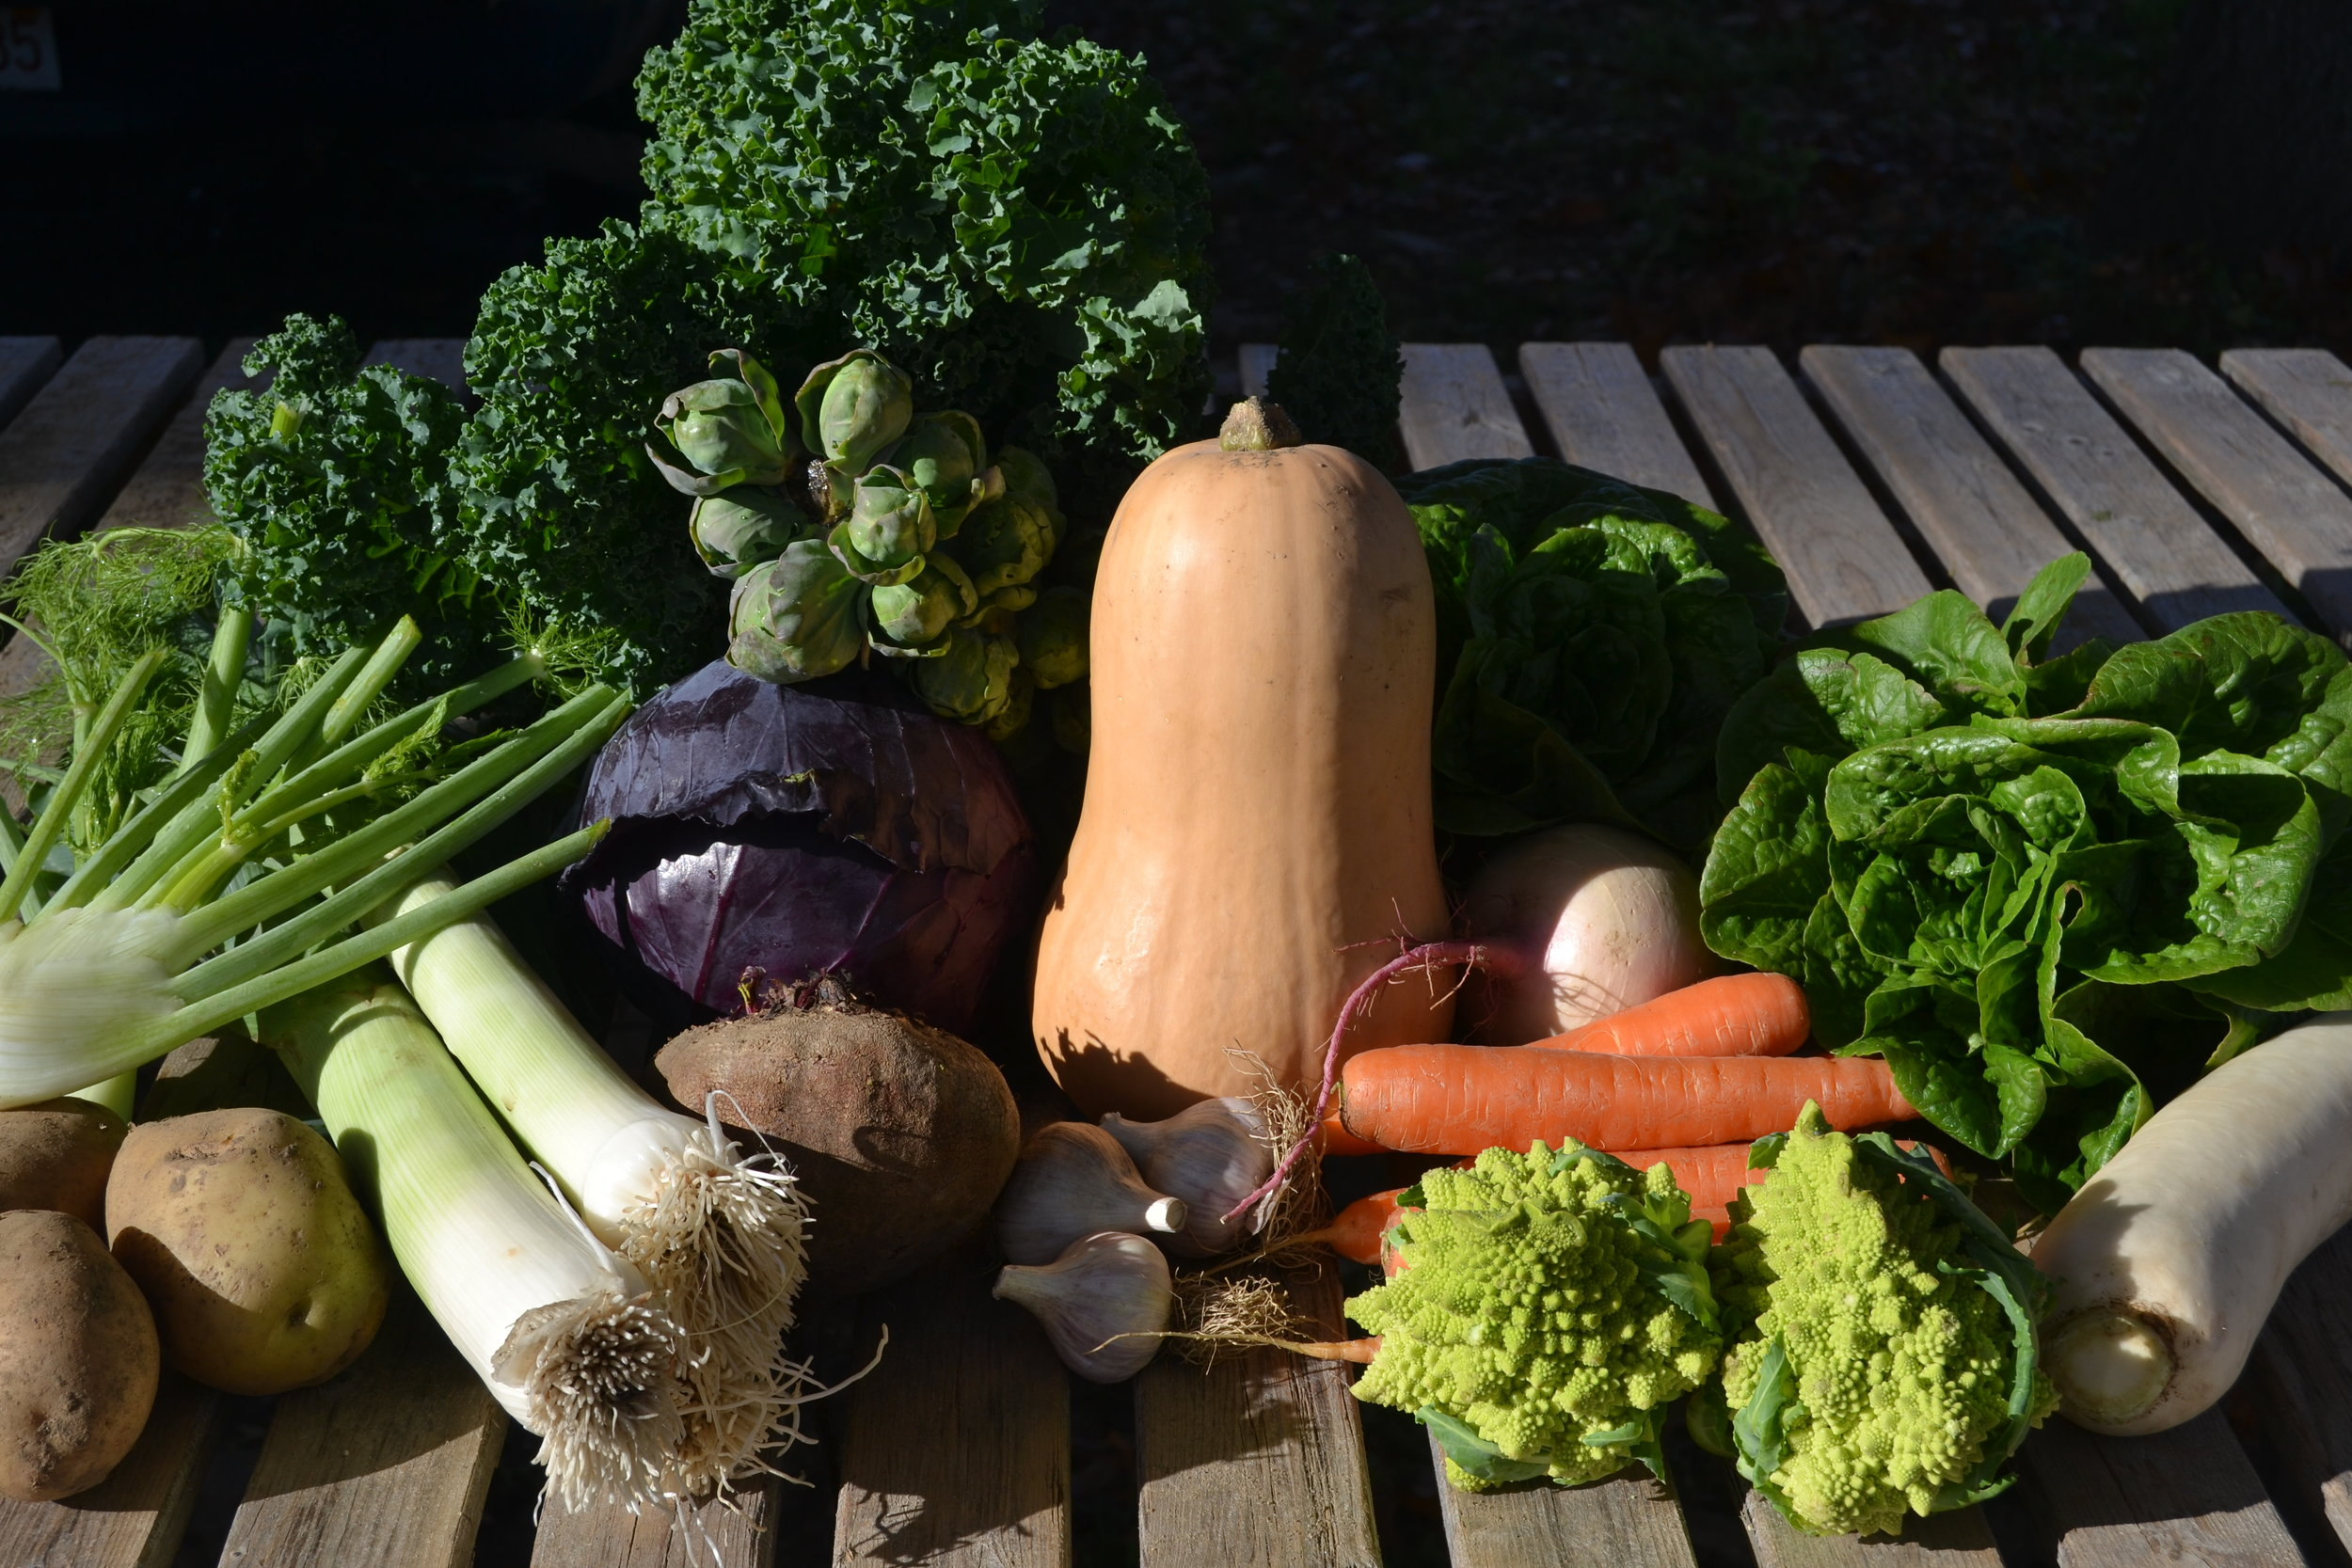 A sampling of the variety of vegetables in the November CSA.